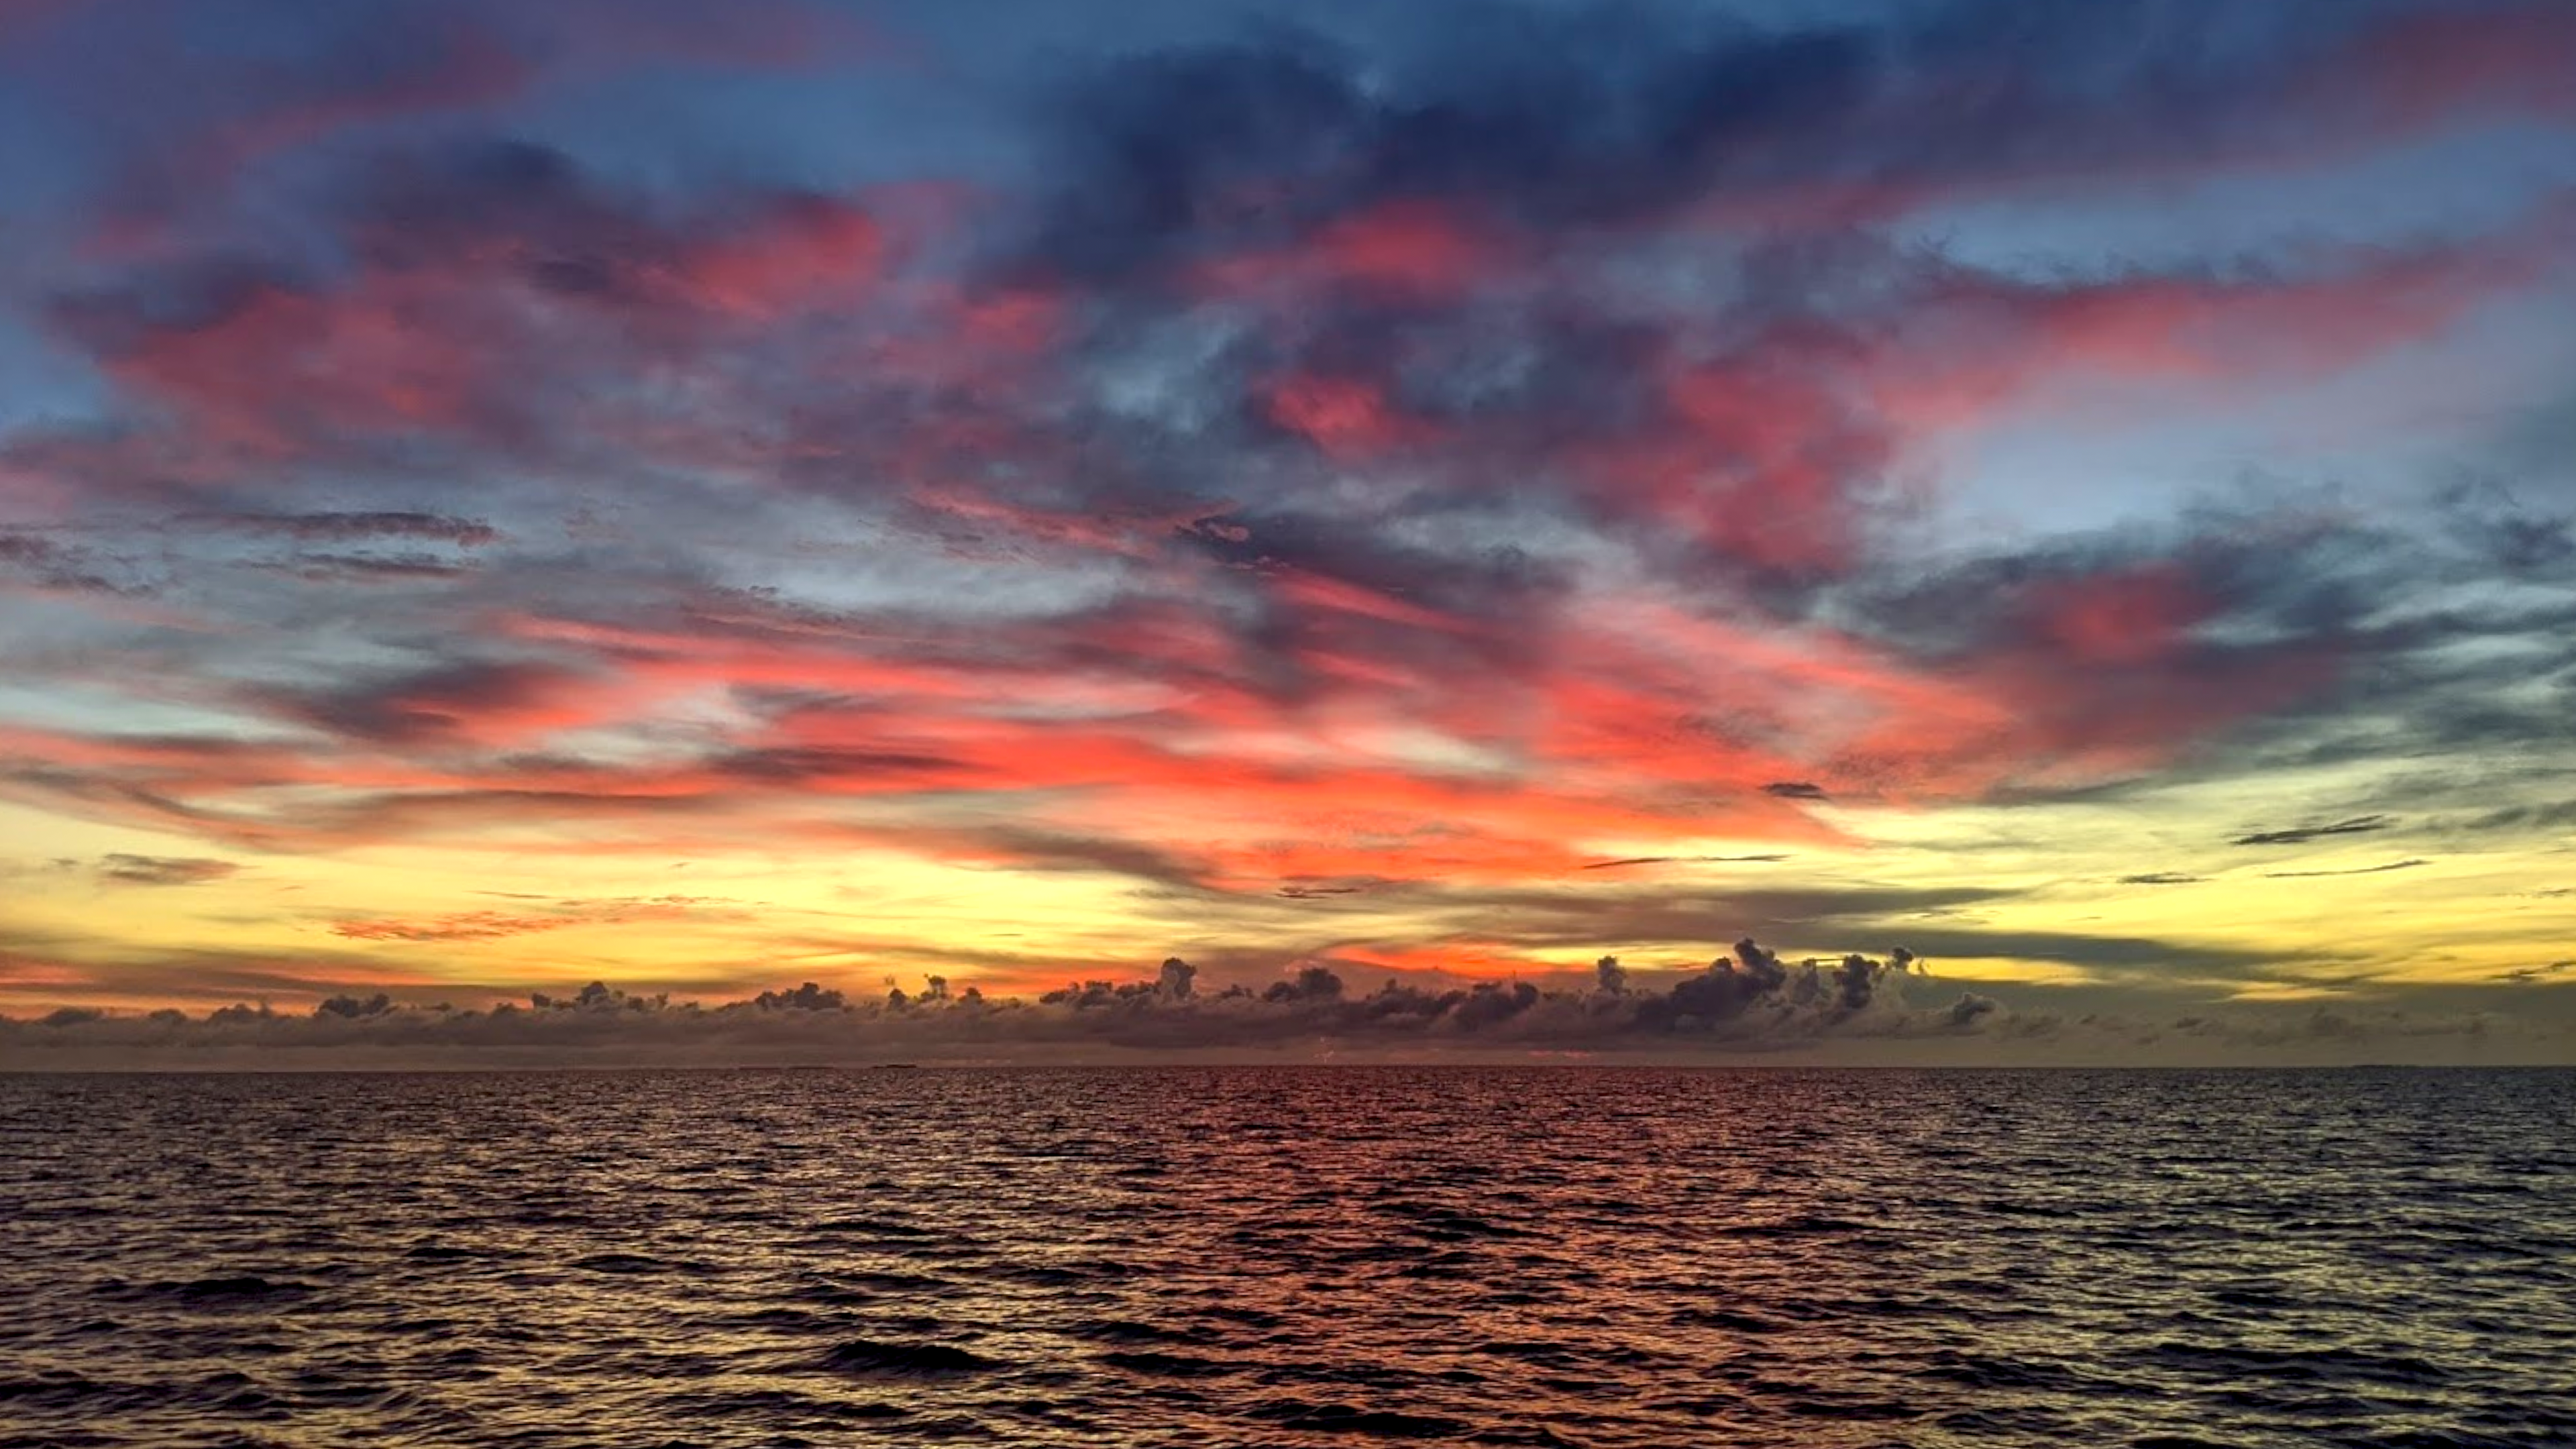 Late Evening In Maldives Colors Are Unedited Oc 3840x2160 Get Your Photography Kit Now Amazon Affil In 2020 Seascape Beautiful Nature Landscape Photographers